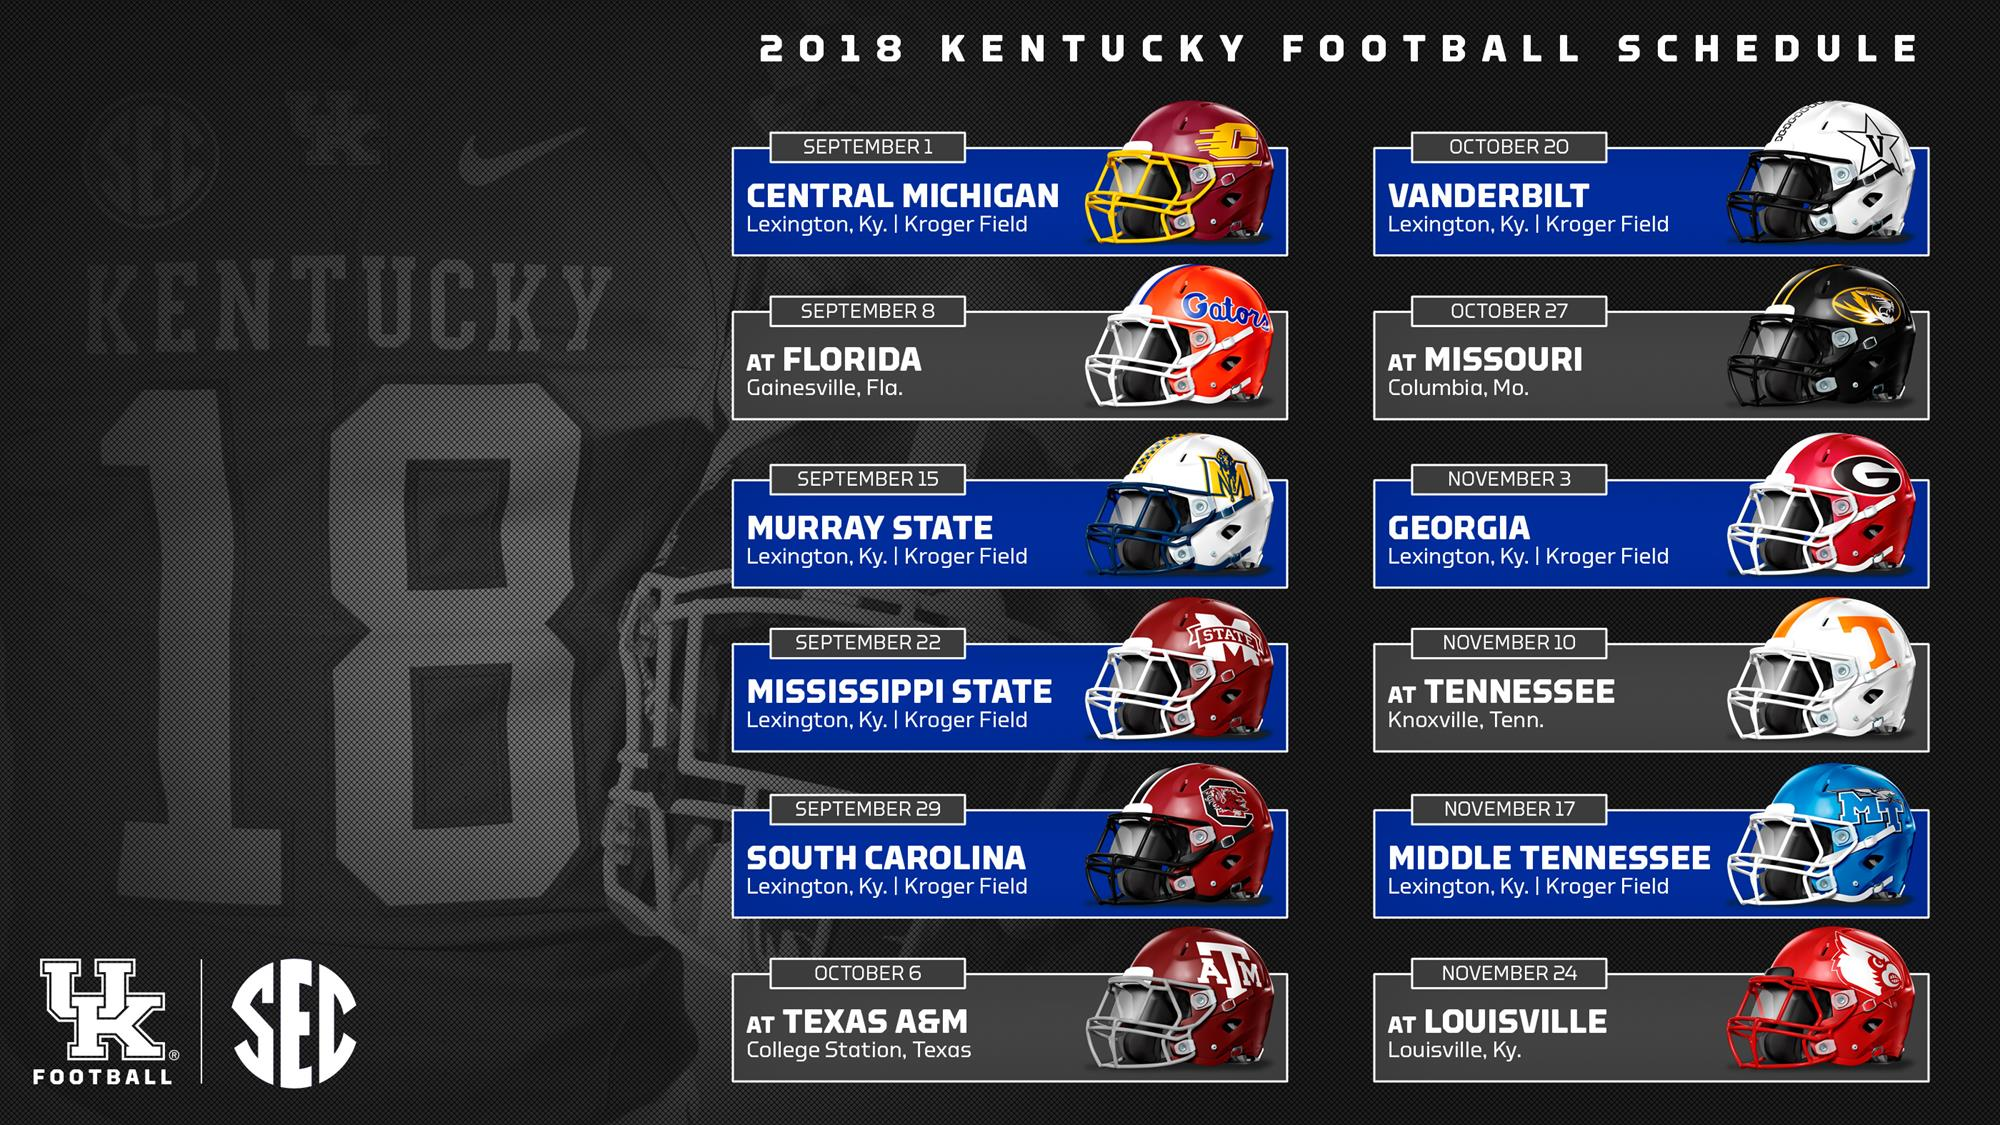 uk announces 2018 football schedule - university of kentucky athletics